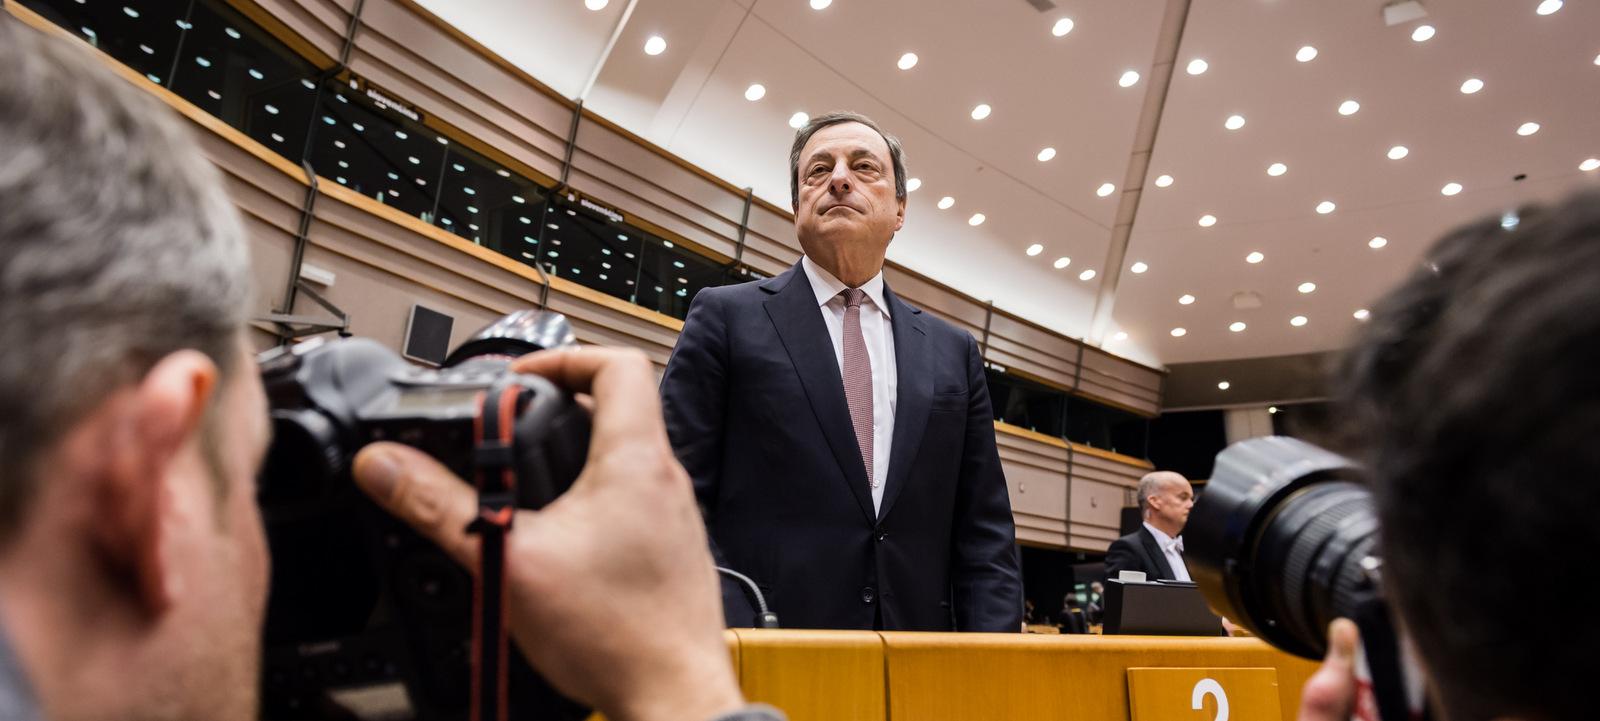 European Central Bank Governor Mario Dragh arrives for a plenary session at the European Parliament in Brussels, Feb. 25, 2015. (AP/Geert Vanden Wijngaert)